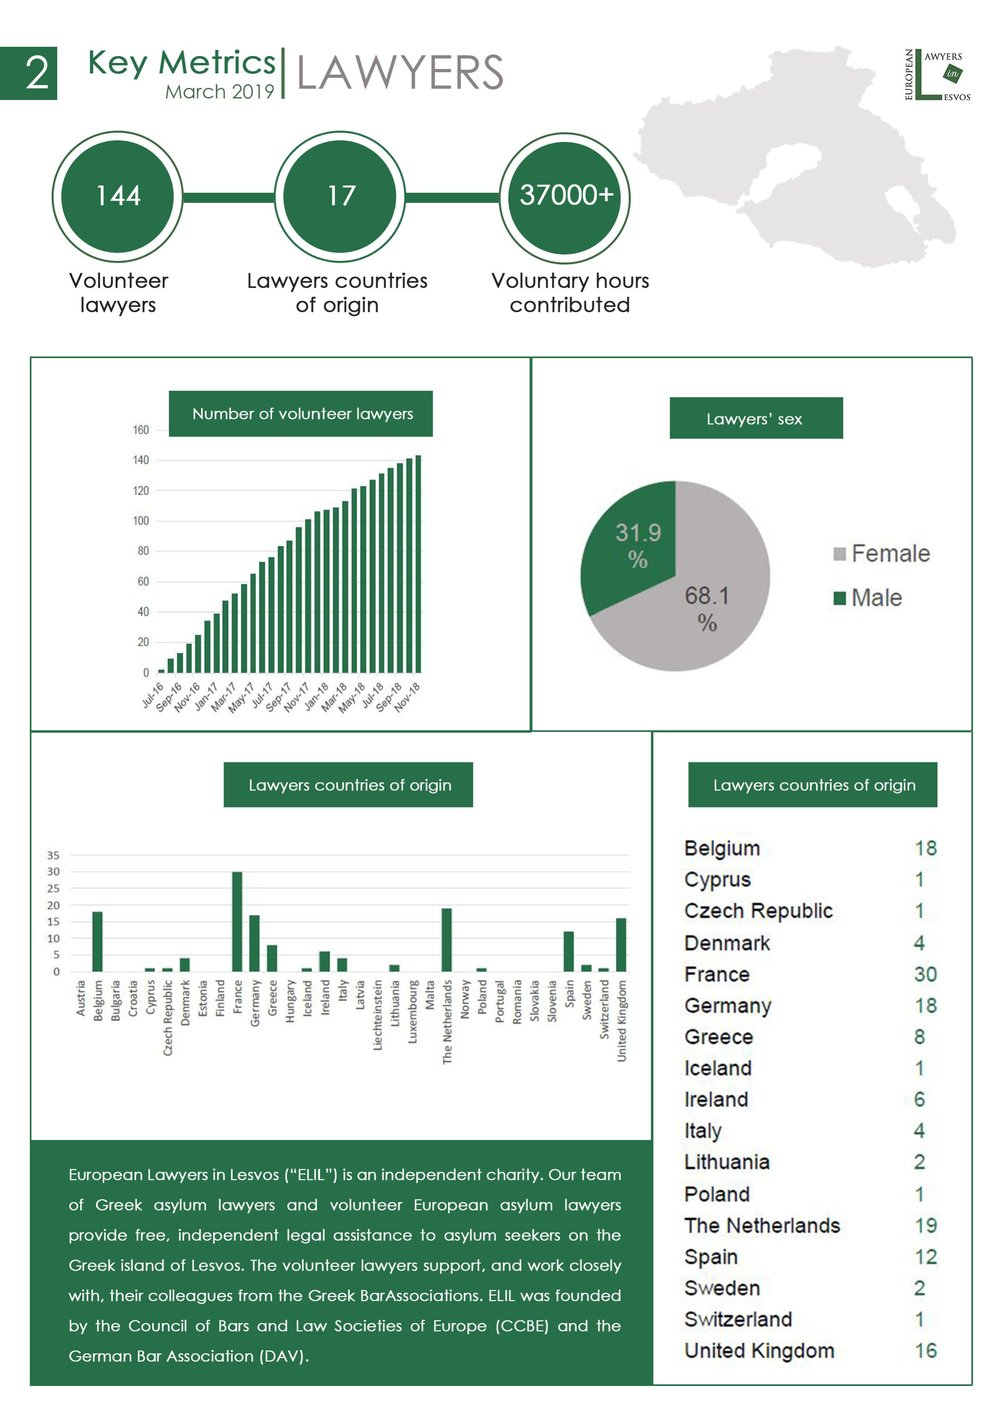 European Lawyers in Lesvos - Statistics - March 2019 - 31 03 2019-page-002.jpg